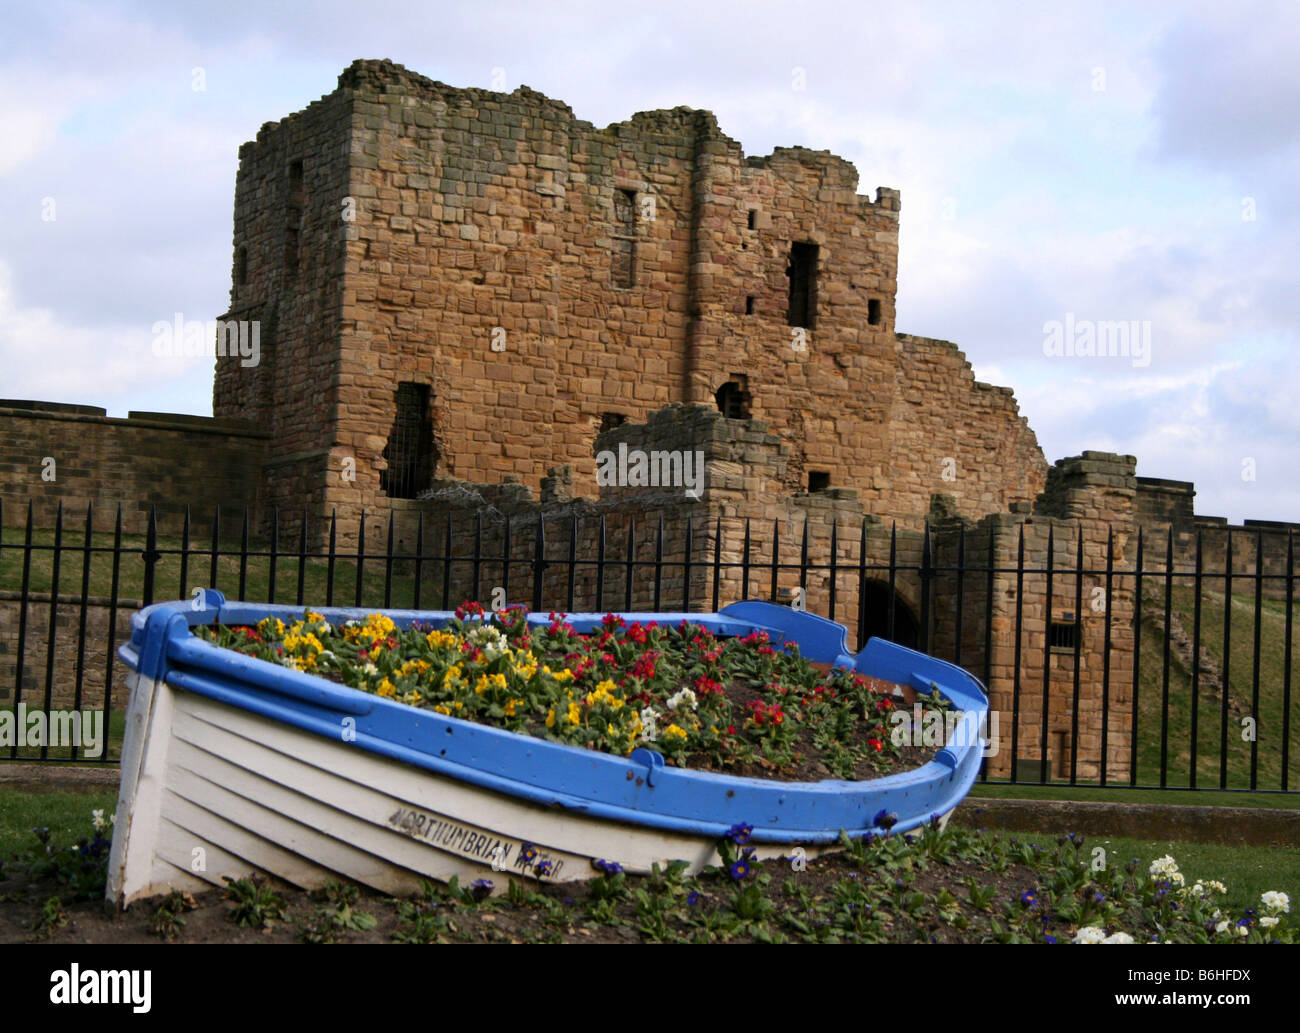 Ruined castle and boat at Tynemouth, North East - Stock Image